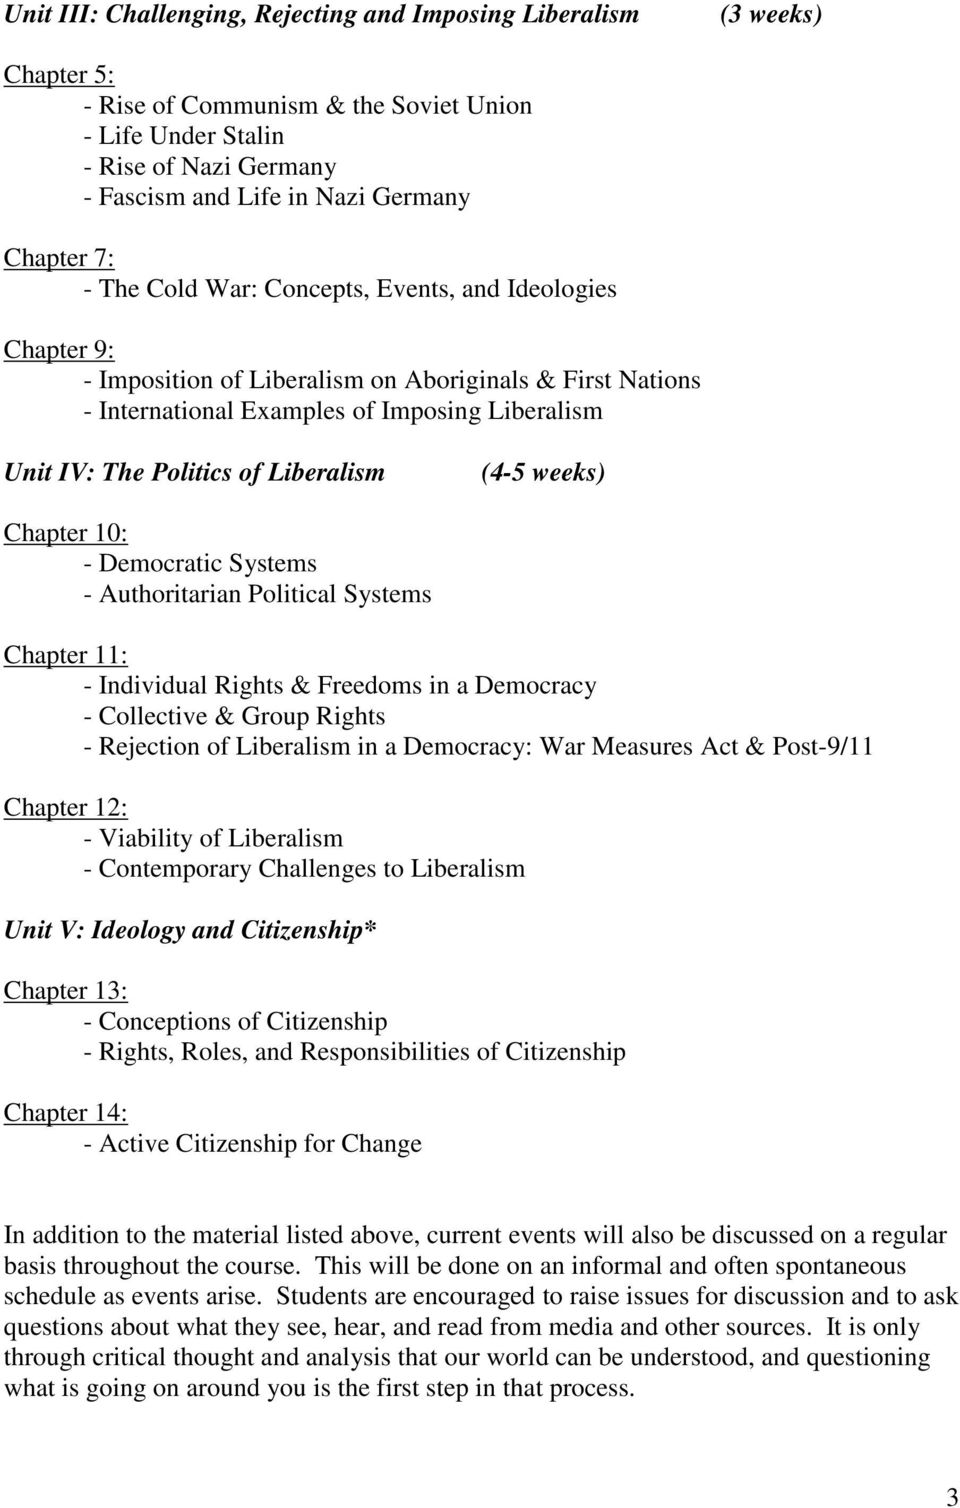 of Liberalism (4-5 weeks) Chapter 10: - Democratic Systems - Authoritarian Political Systems Chapter 11: - Individual Rights & Freedoms in a Democracy - Collective & Group Rights - Rejection of